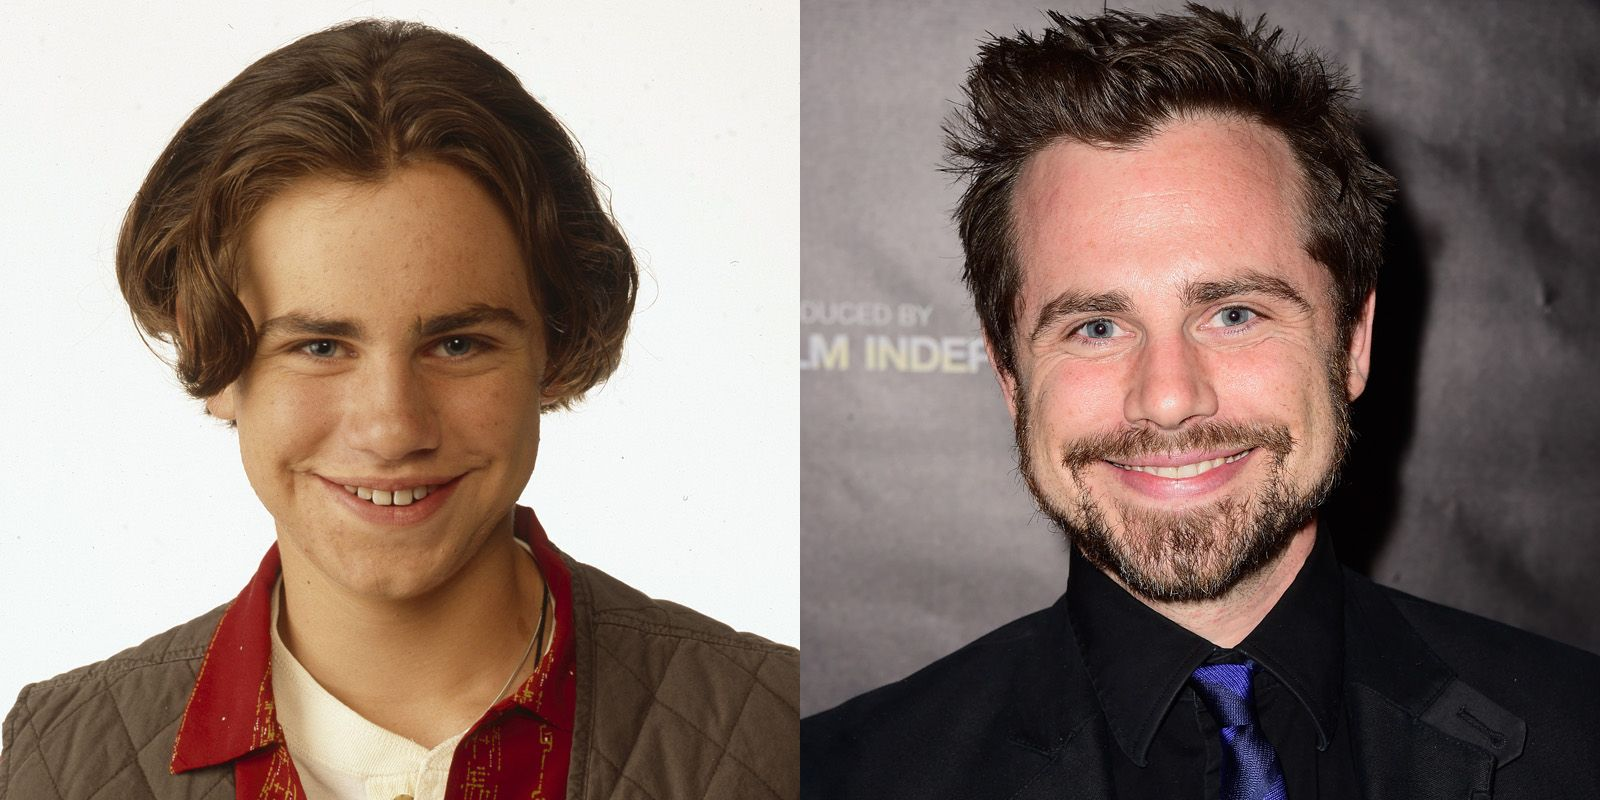 "<p>As Cory's best friend Shawn Hunter, Rider Strong has also returned with guest appearances on <em>Girl Meets World.</em> Post-<em>Boy Meets World</em><span class=""redactor-invisible-space"">, the actor graduated from Columbia University, got an MFA in fiction and literature, then wrote short stories and poems (that got published in literary journals! So he's legit). He writes and directs films alongside his brother Shiloh in a production company called Strong Brothers Magic Show.</span></p>"